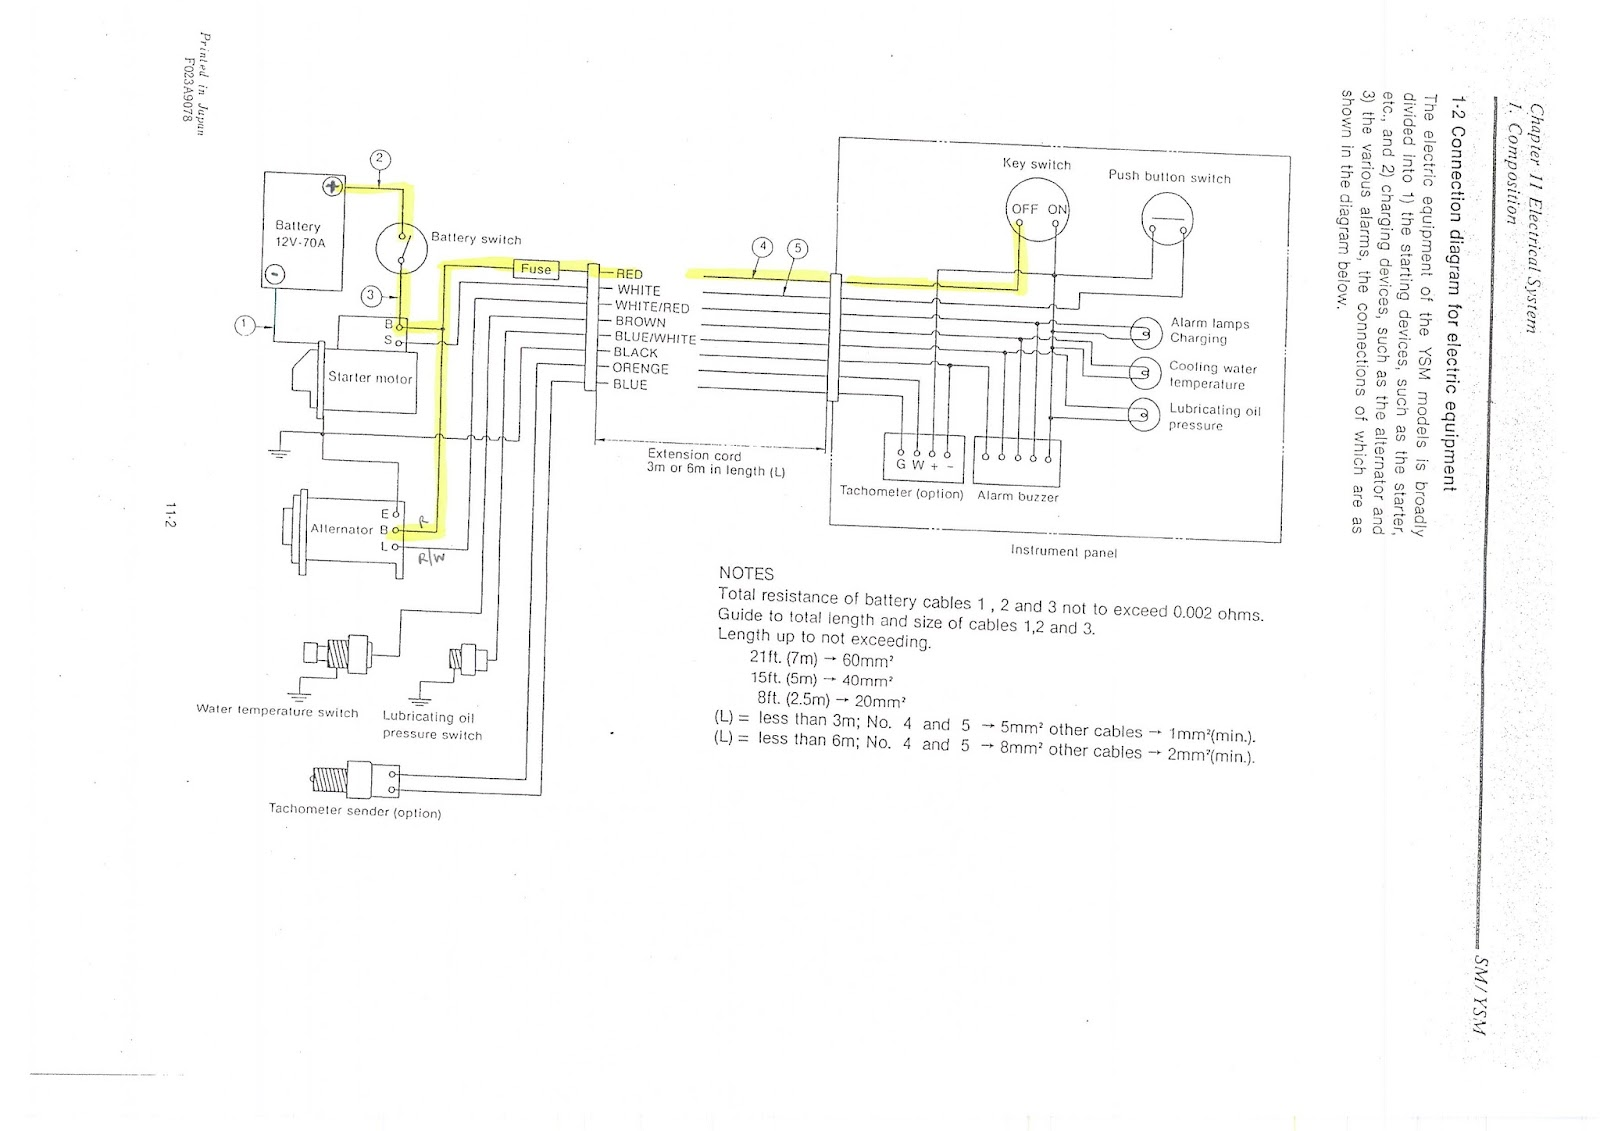 Panel Wiring Diagram Of An Alternator : 37 Wiring Diagram